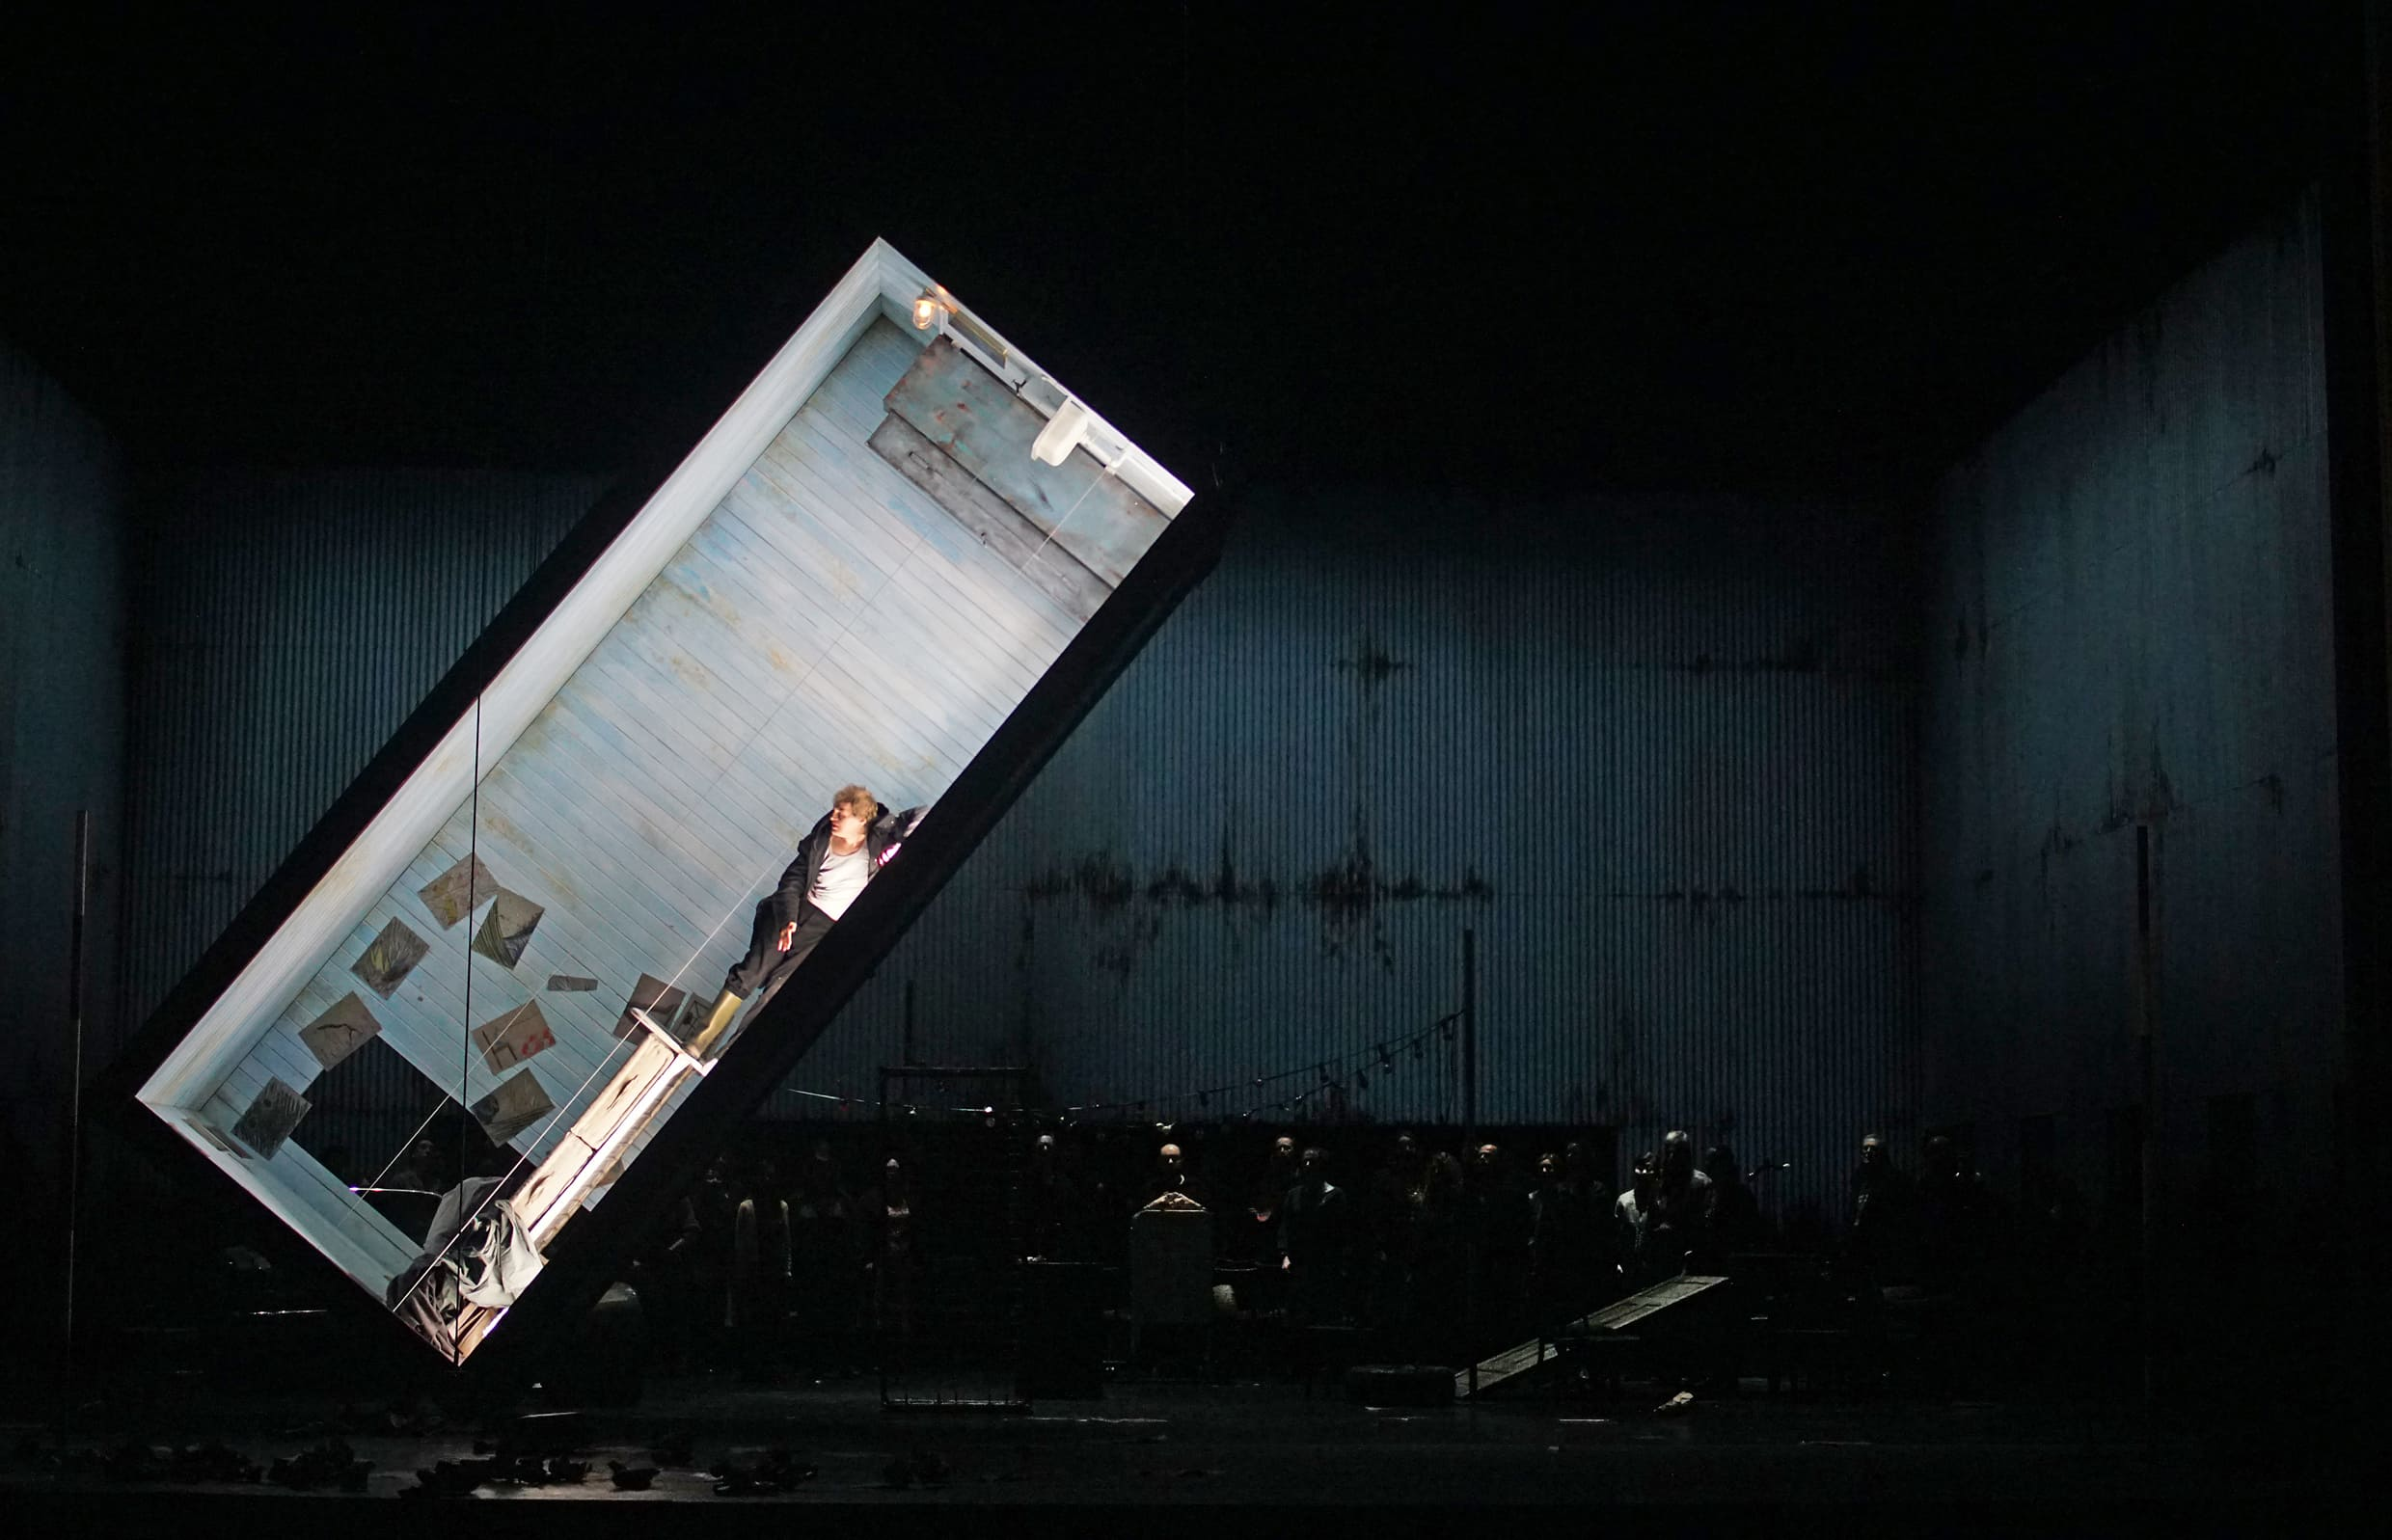 Peter Grimes in the box